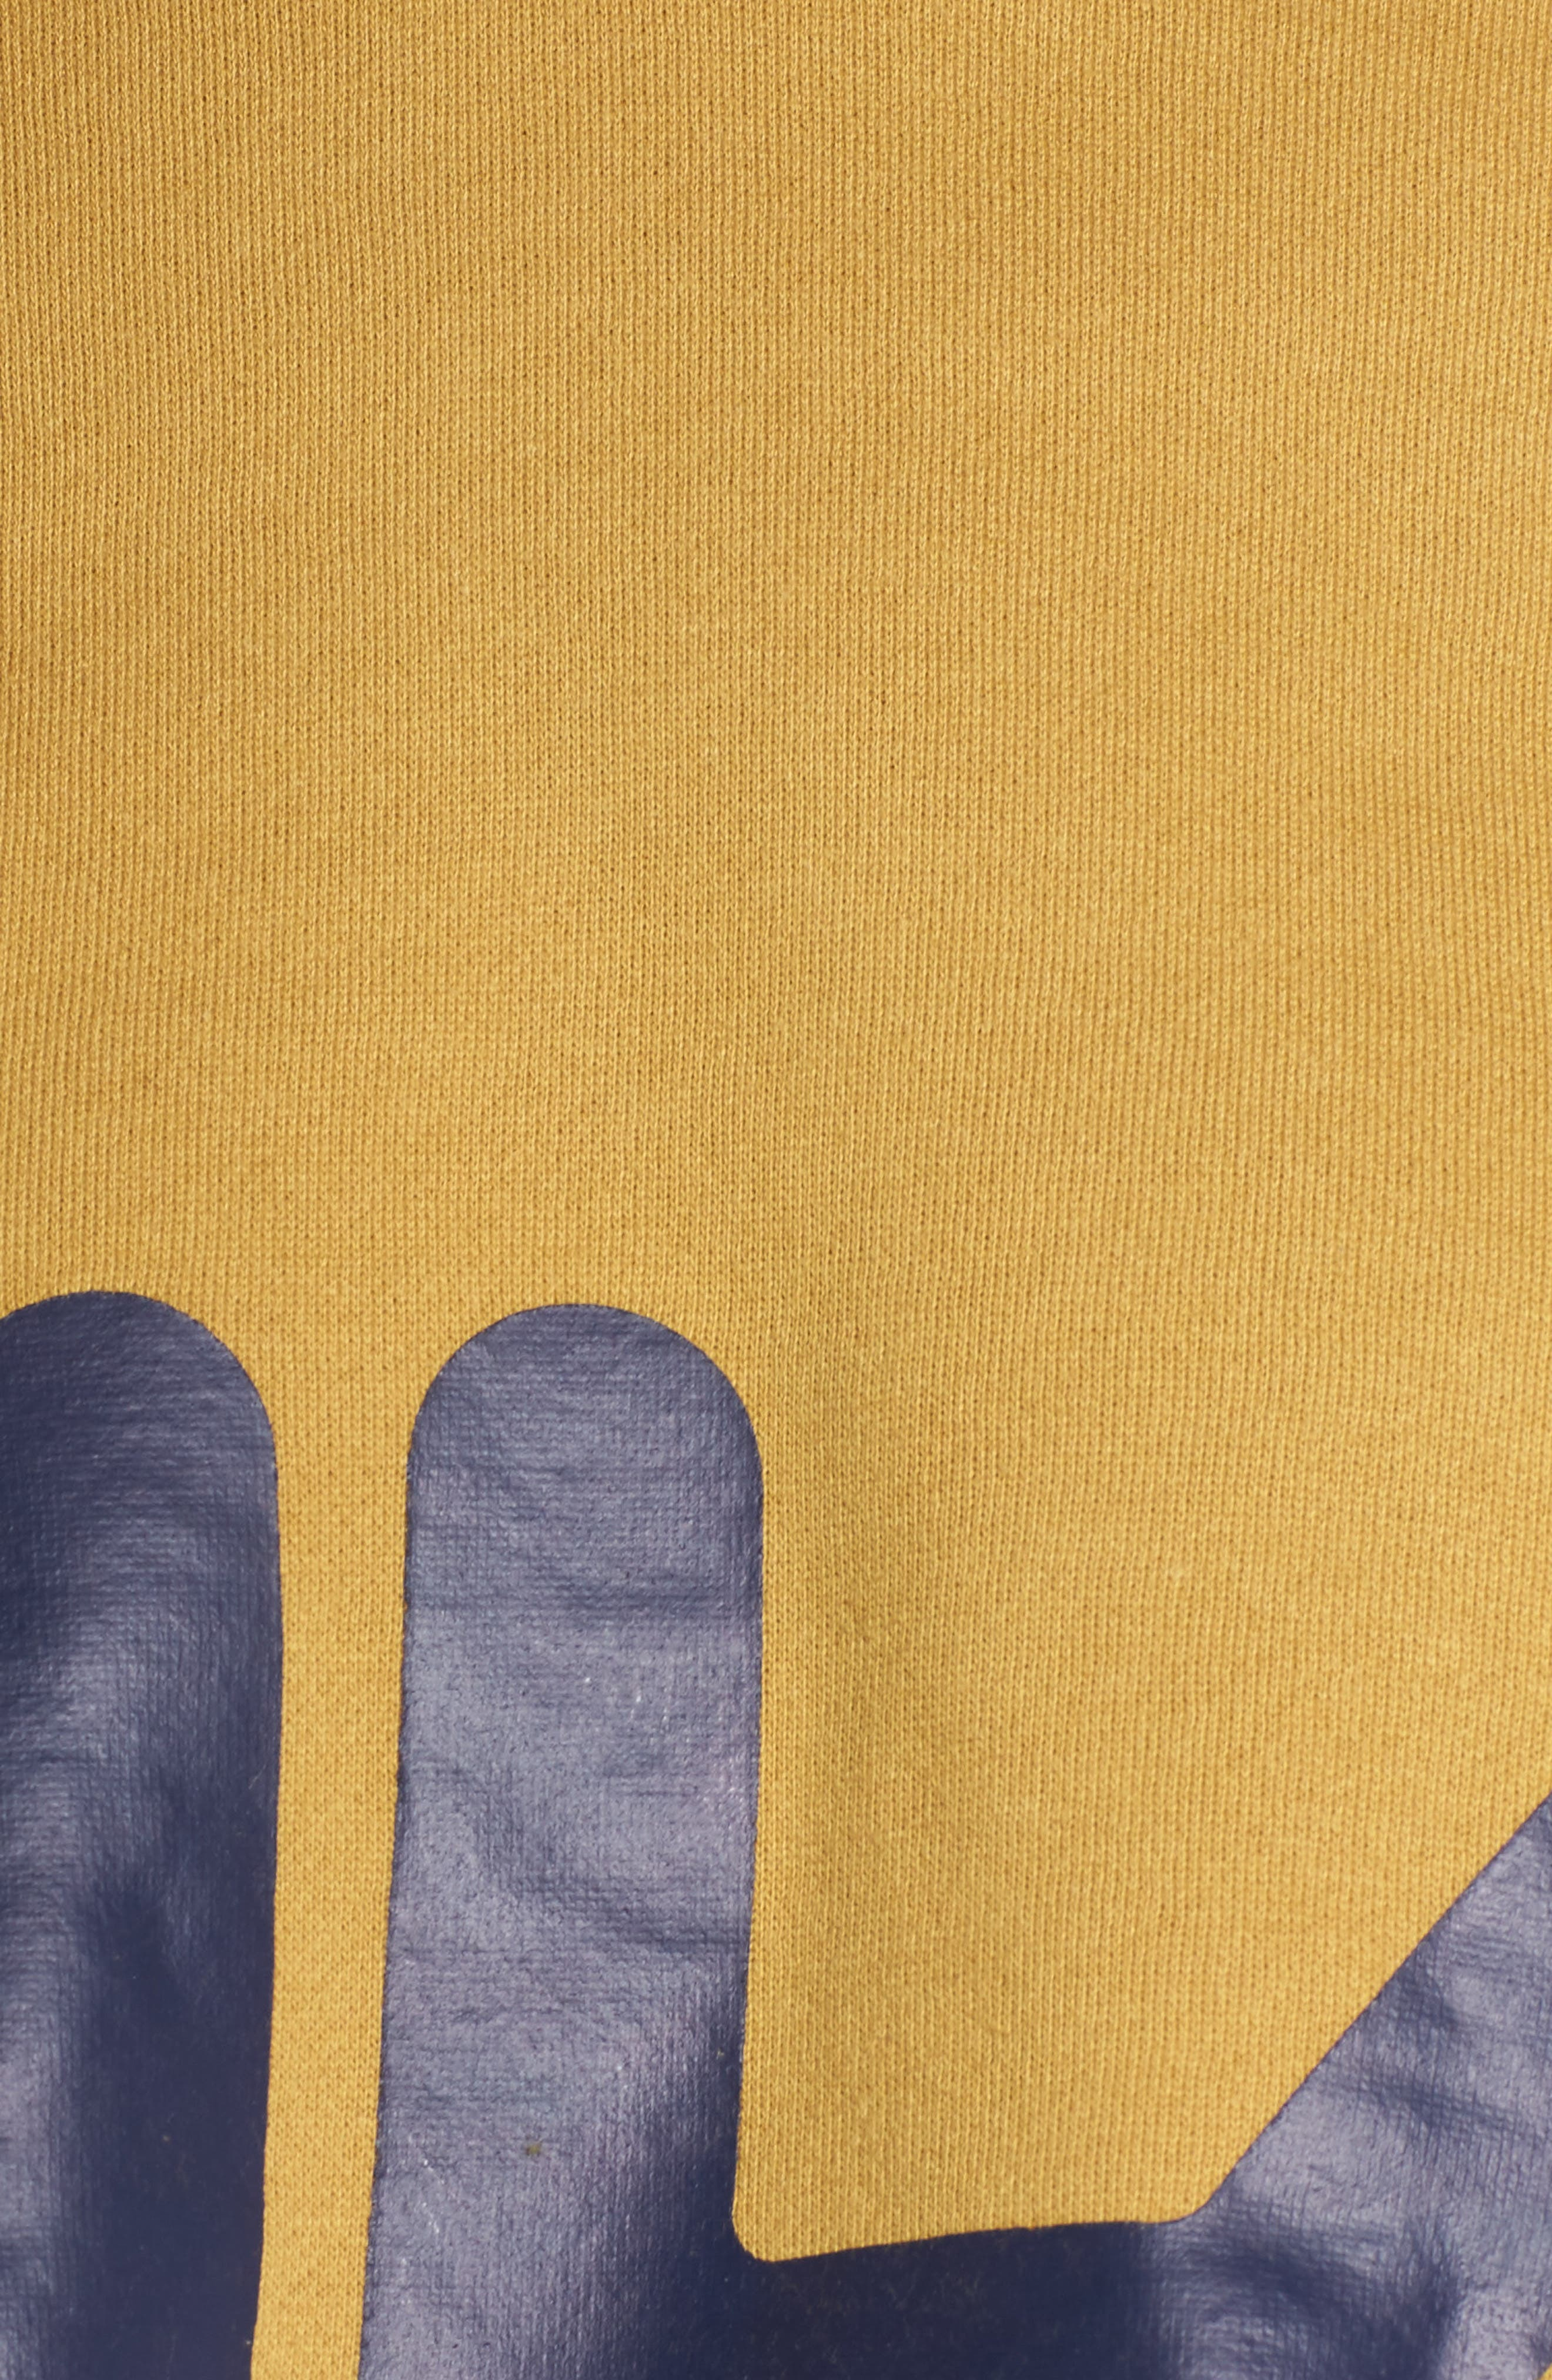 Pam Crop Hoodie,                             Alternate thumbnail 6, color,                             Mustard Gold/ Navy/ White